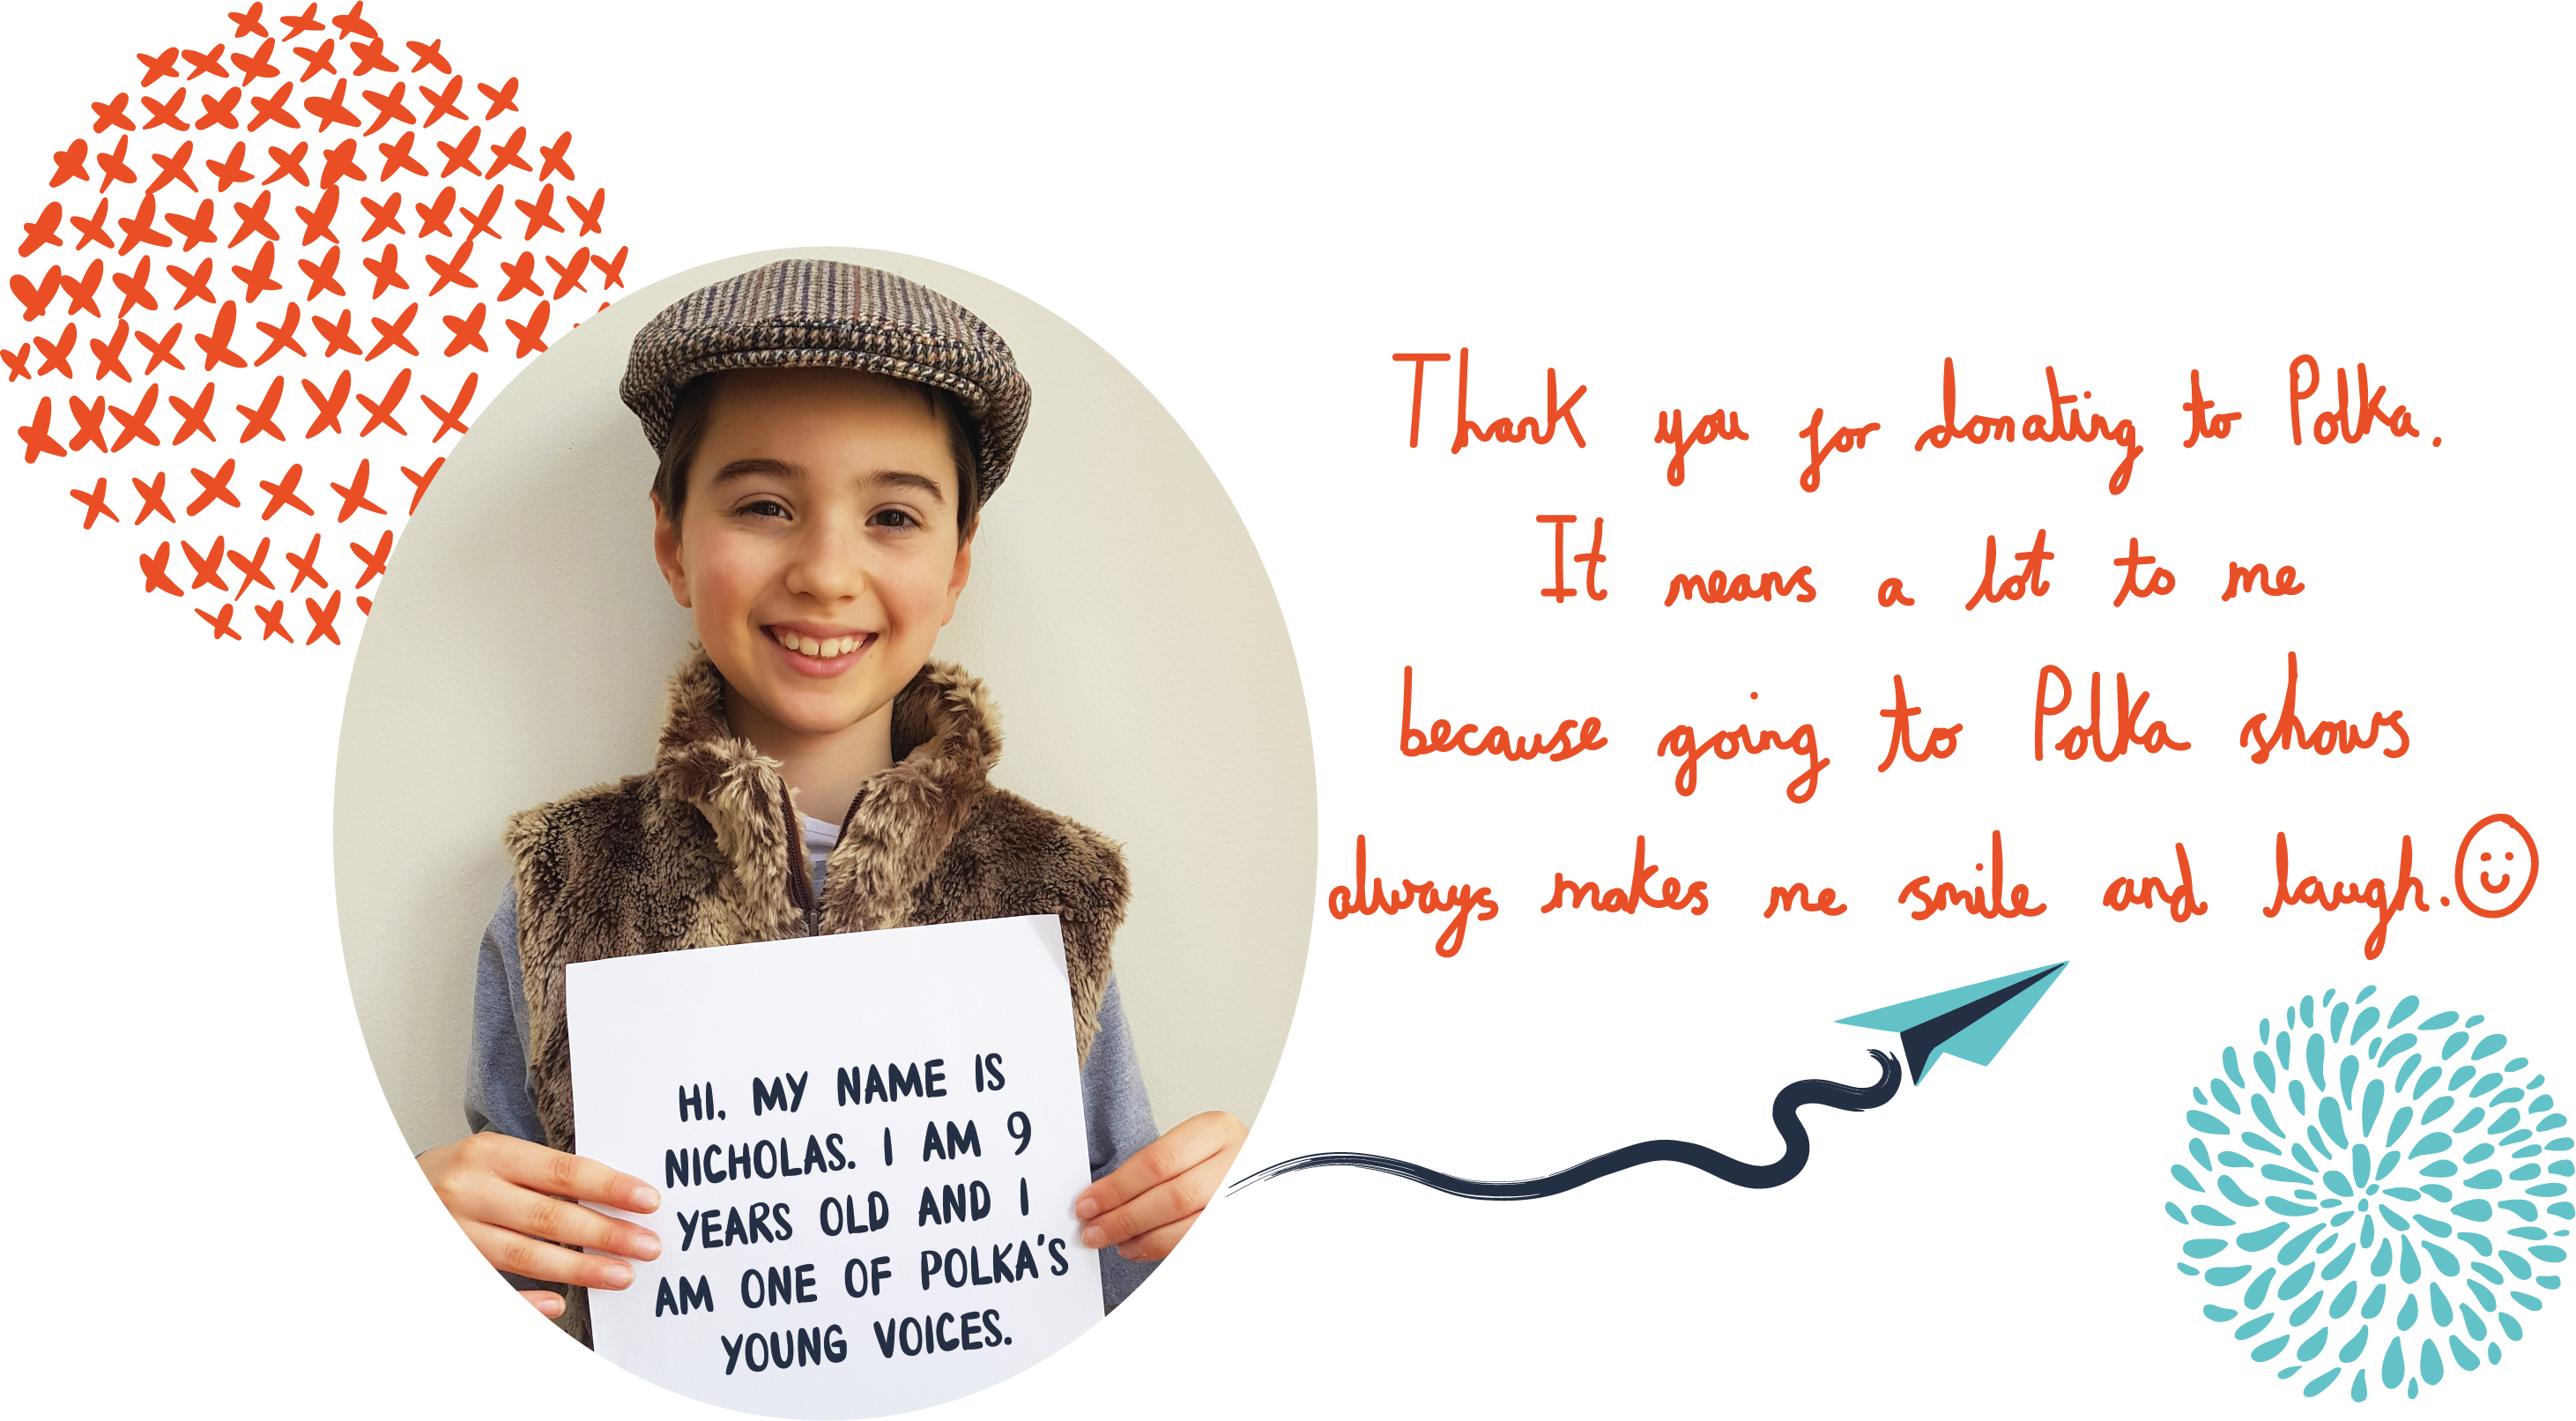 A child holding a sign with the words 'Ji. My name is Nicholas. I am 9 years old and I am one of Polka's Young Voices'